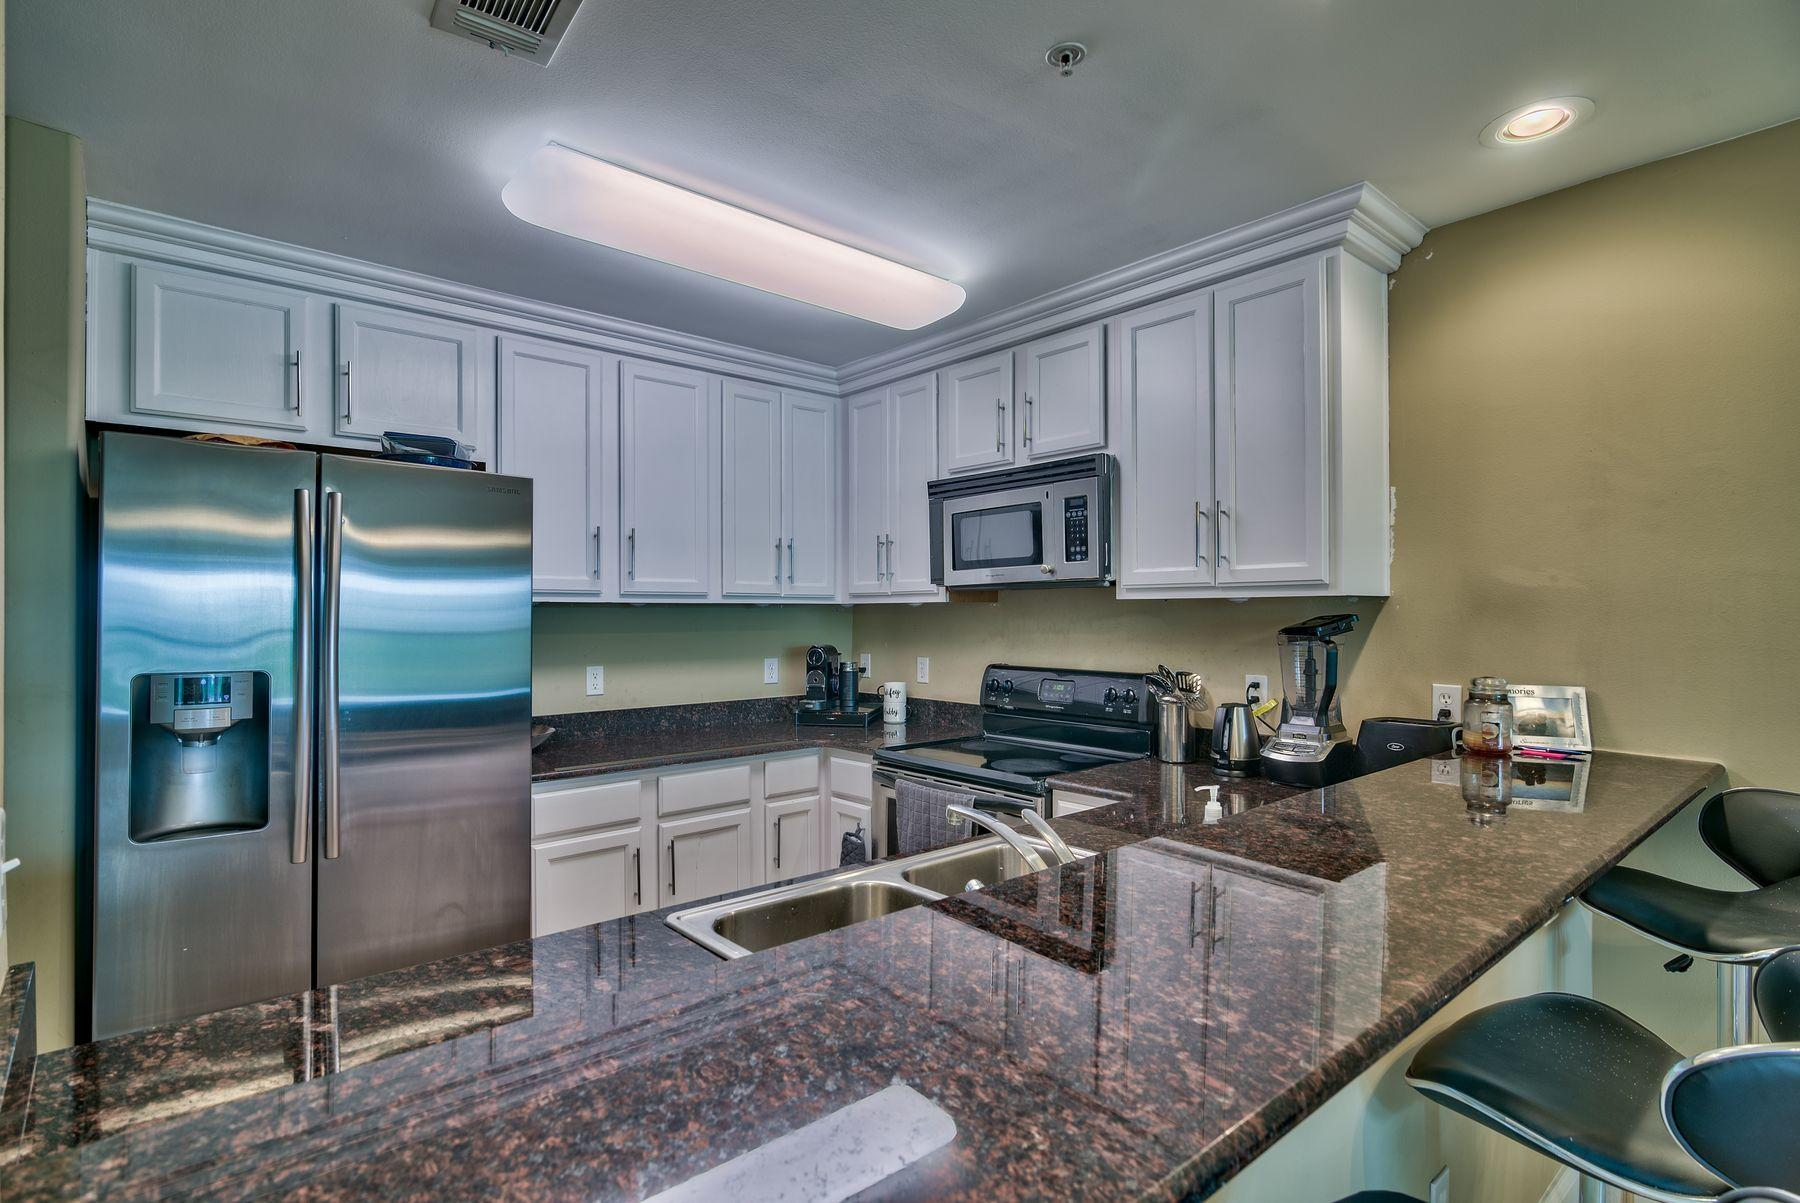 Ideally located just a few blocks from the beach, this two-bedroom, two-bath condo in the heart of Destin offers both spaciousness and convenience in one well-priced package. There's no need to rent when you can buy this 1,100-sq.-ft. unit located at Old Bay Condominiums. This condo features two large bedrooms, each with its own private bathroom. The kitchen is equipped with white cabinetry, granite countertops, stainless appliances and a breakfast bar to seat four. Throughout, neutral carpet and paint, as well as tile in the entryway and kitchen, accommodates a variety of design styles. A full-sized laundry room provides additional storage. This unit is located in a building with an elevator and added security features, including security doors and electronic equipment that allows you to  see who is at outside doors.